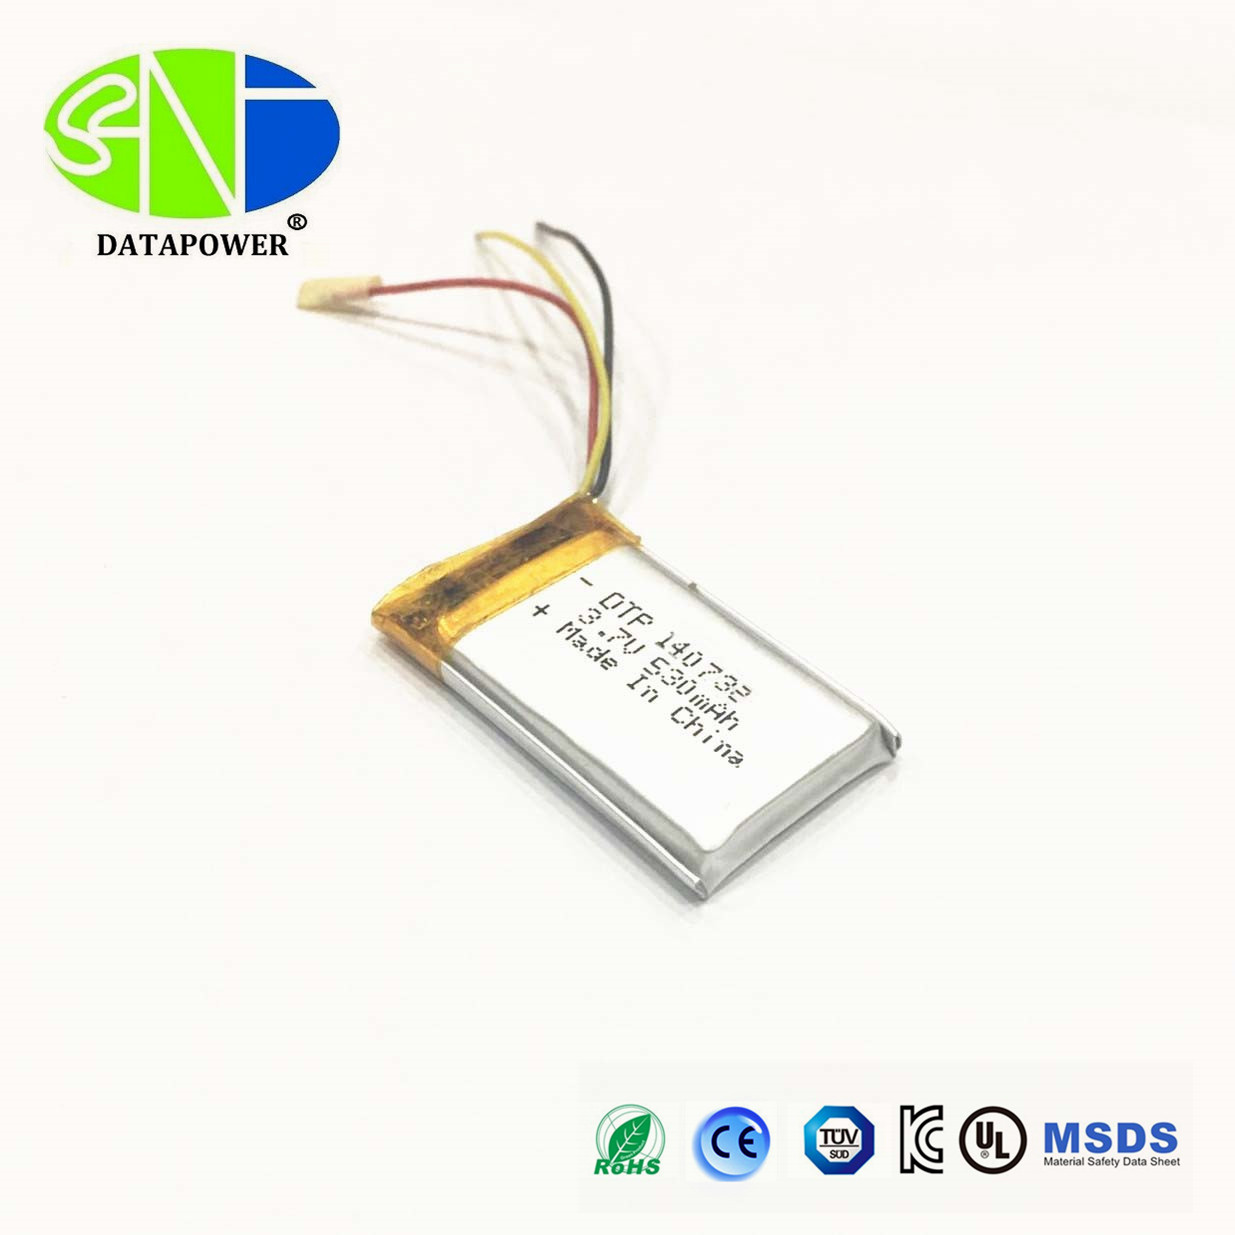 UN38.3/MSDS for lipo battery 3.7v 530mah lithium polymer battery